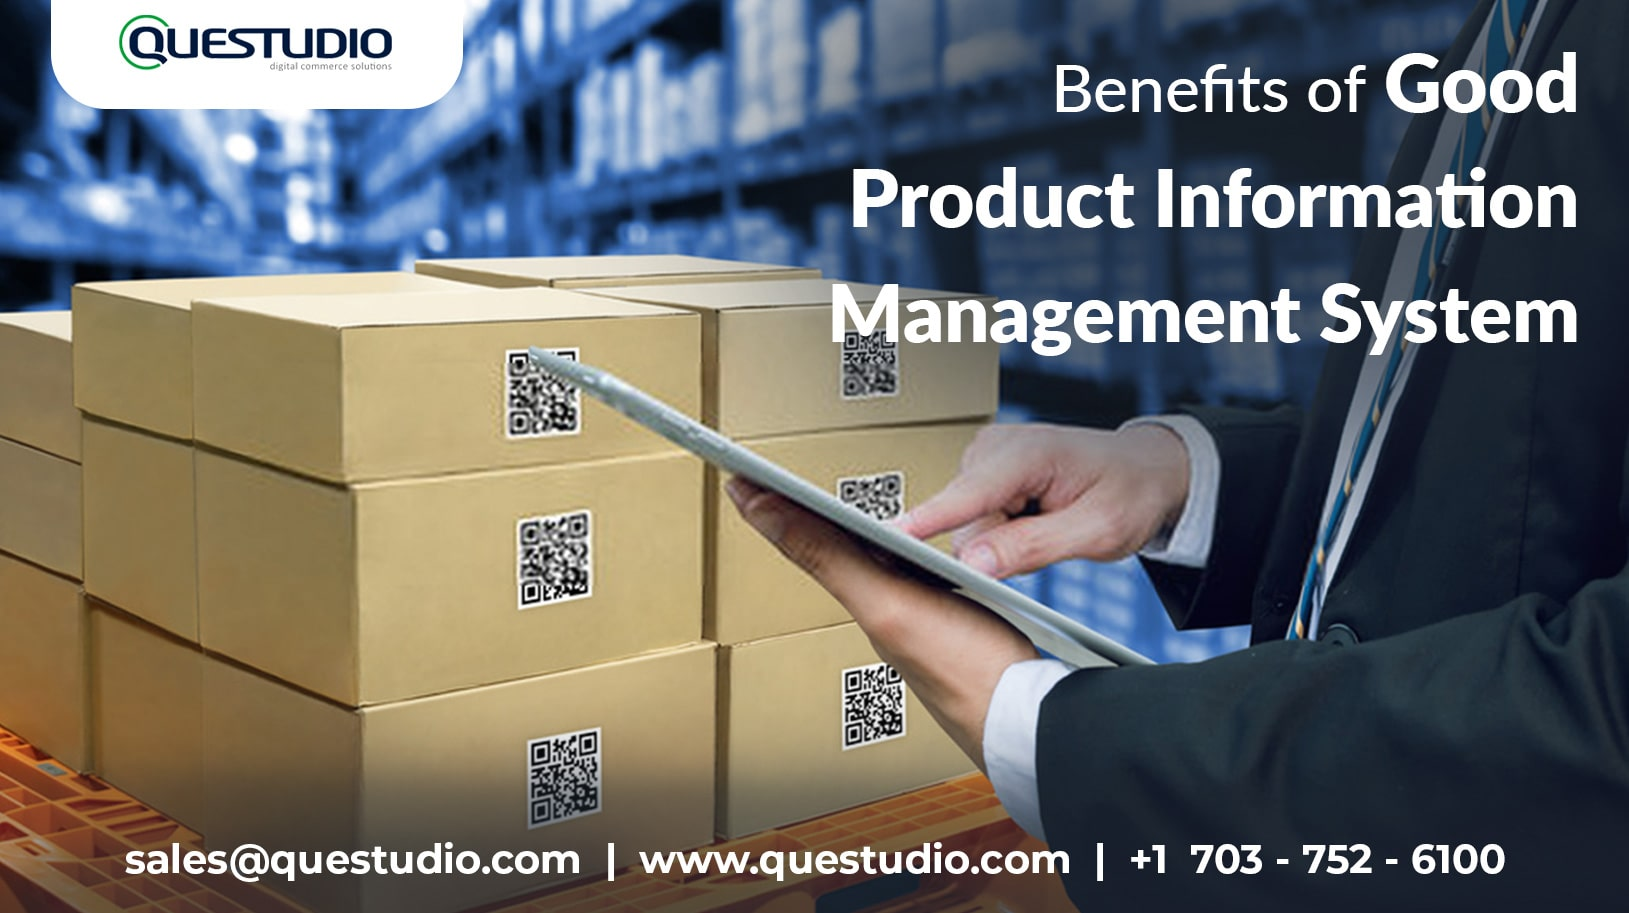 Benefits of Good Product Information Management System